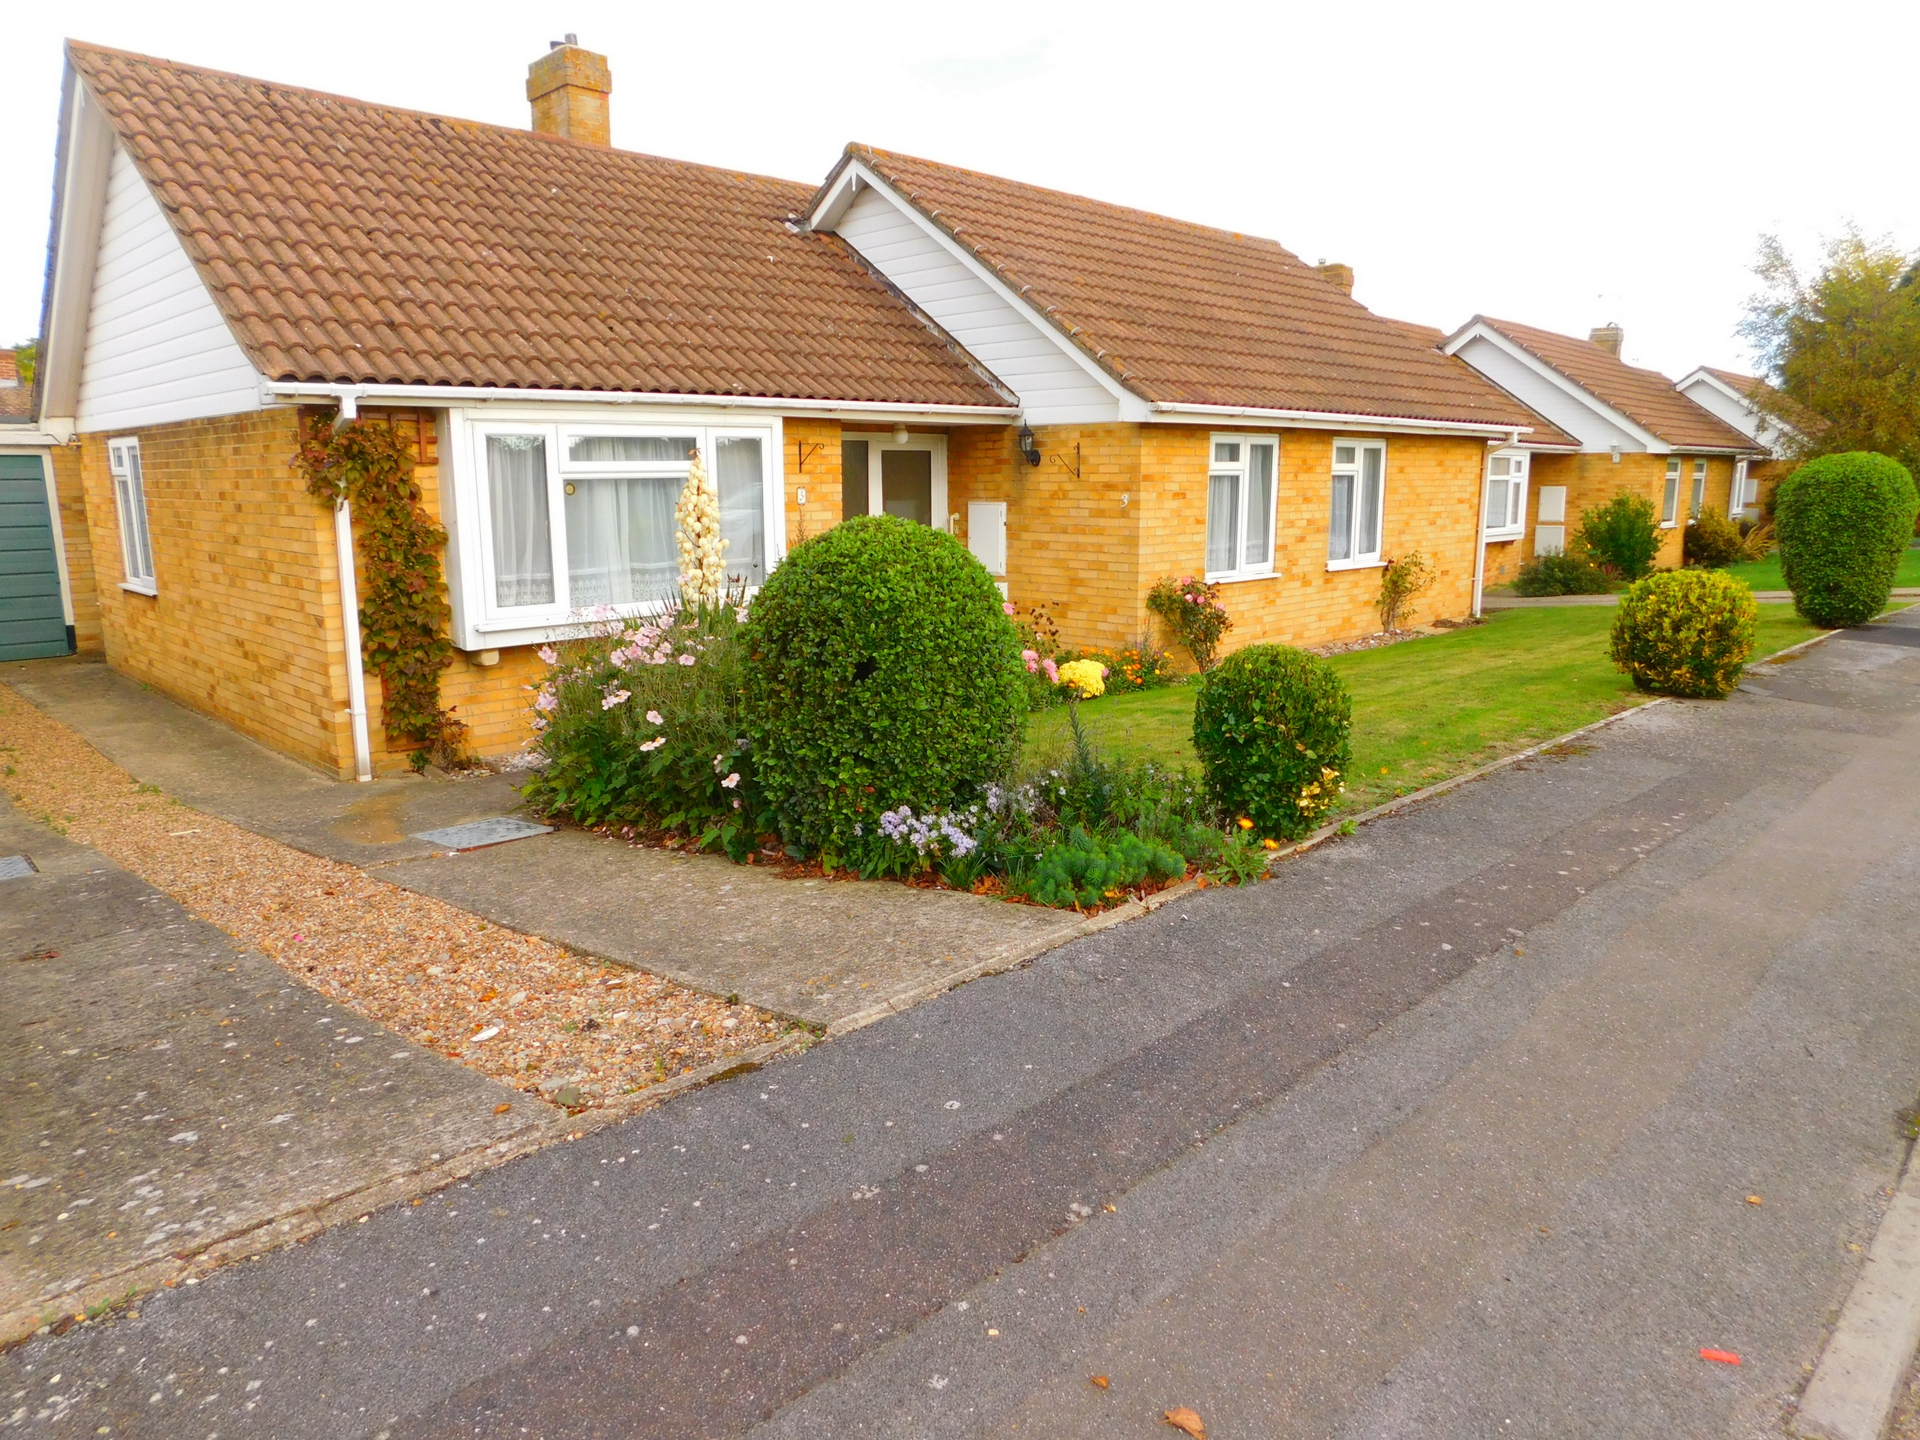 3 bed bungalow to rent in Cheesmans Close, Minster, CT12, CT12